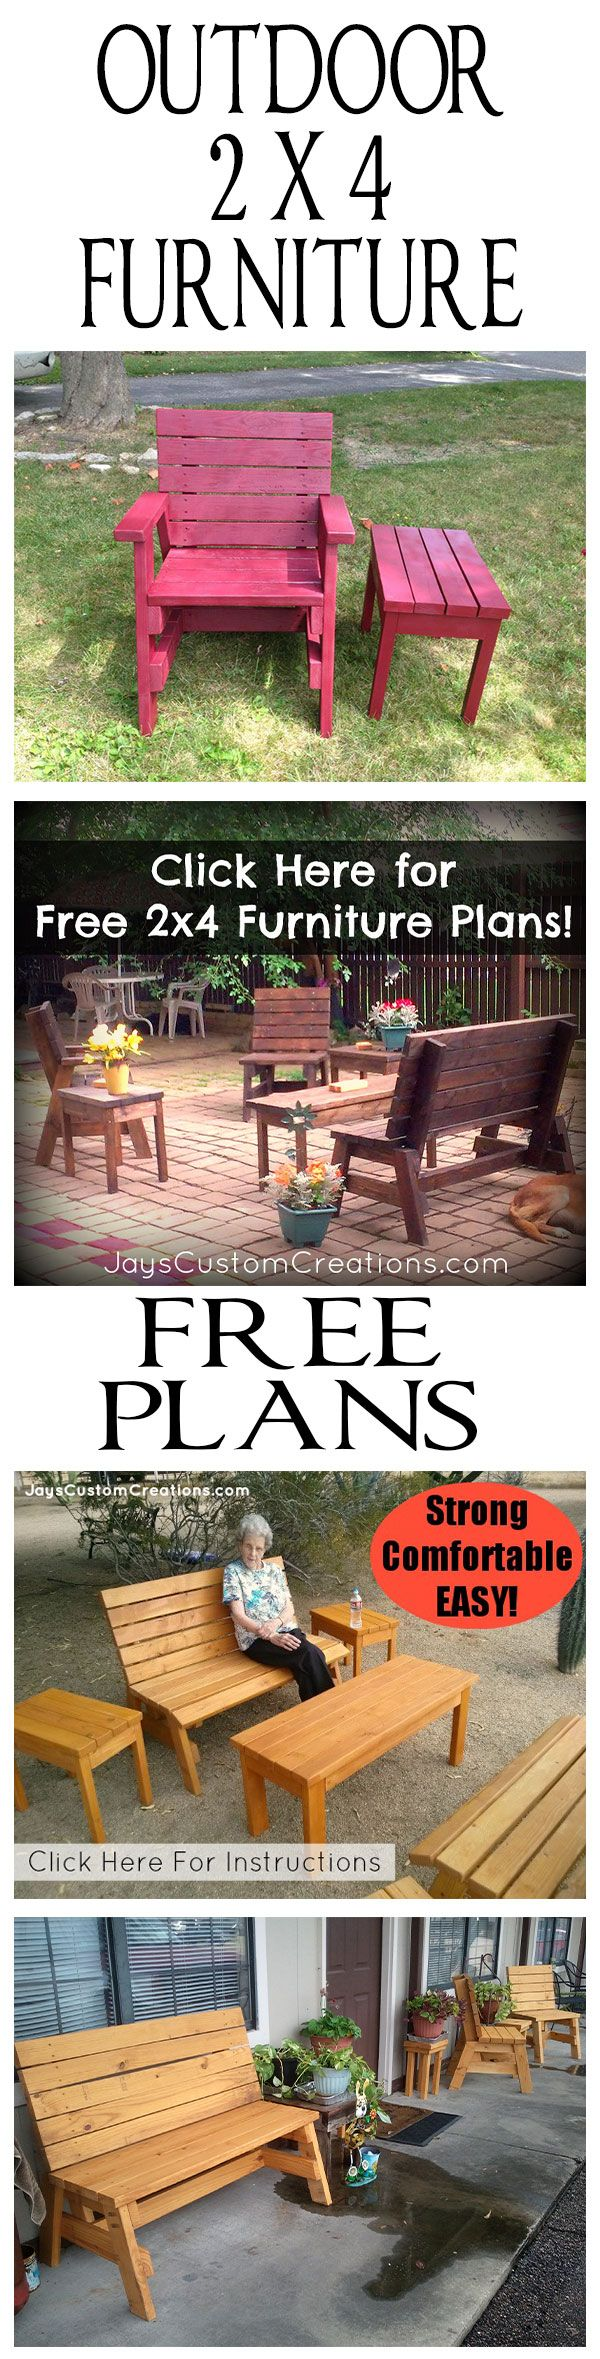 25 best outdoor furniture plans ideas on pinterest designer teds wood working outdoor 2x4 furniture plans bench seat ideas look good with a baanklon Gallery